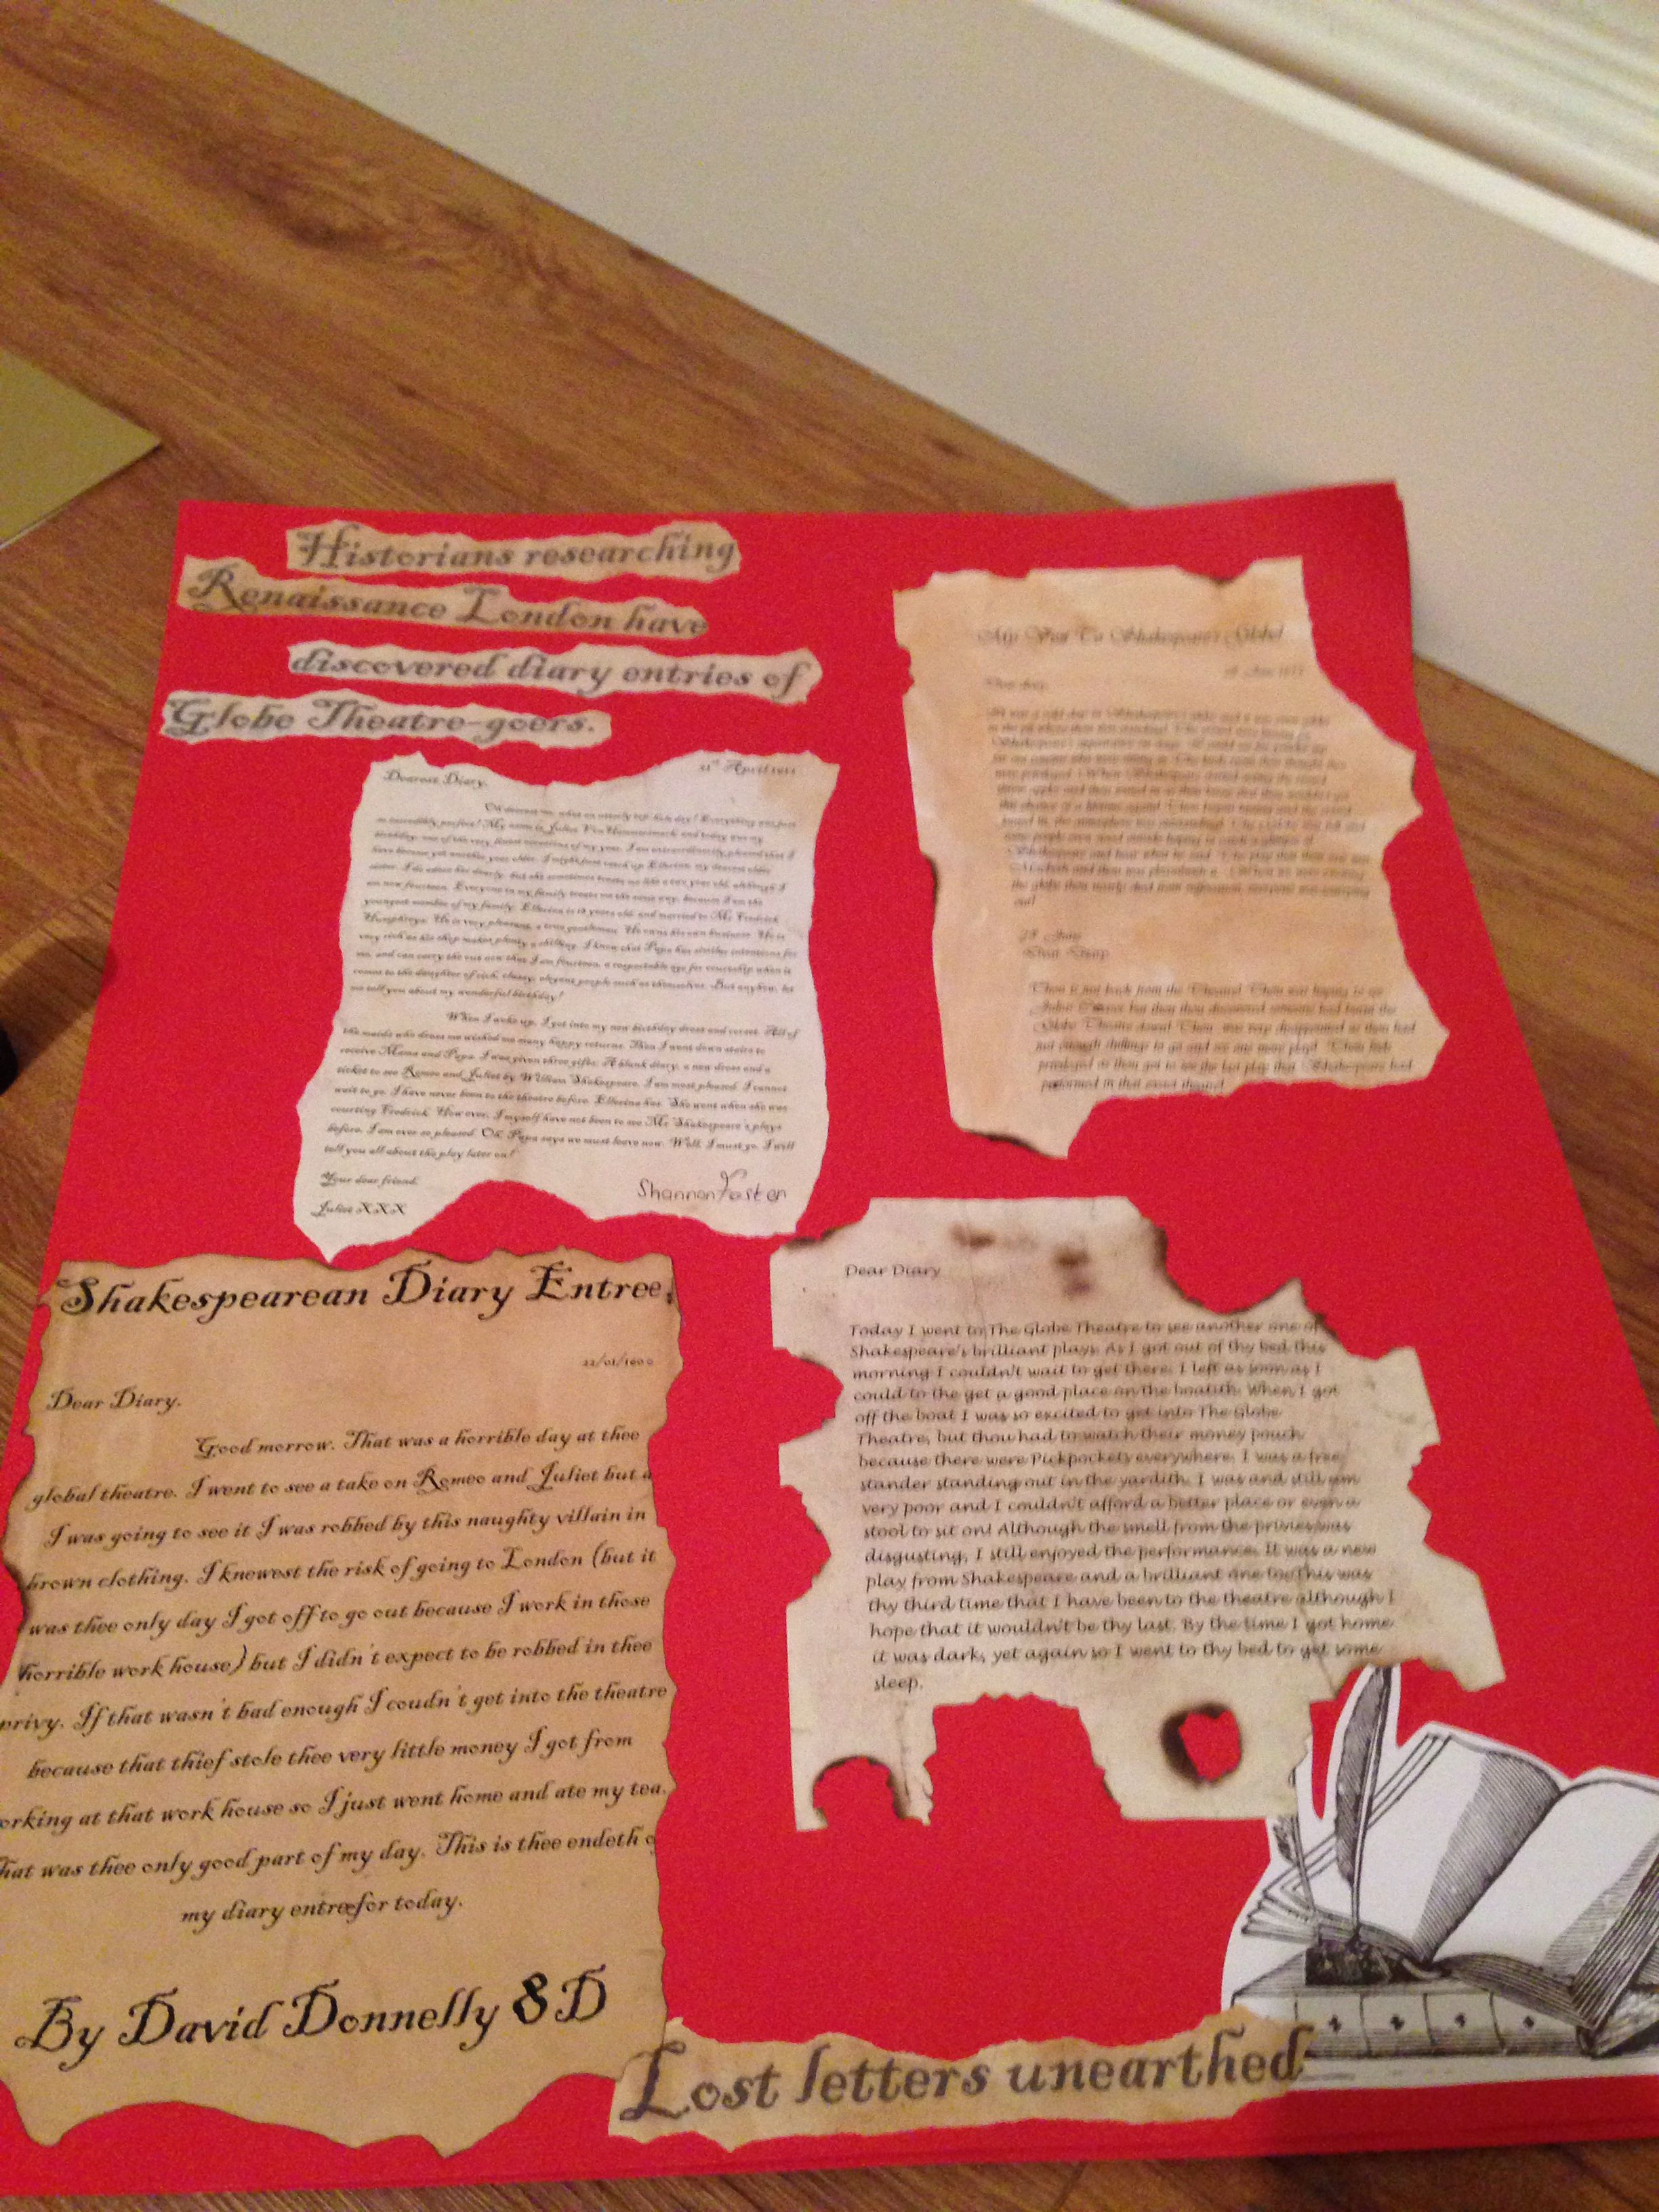 Wall Displays Shakespearean Diary Entries About The Globe